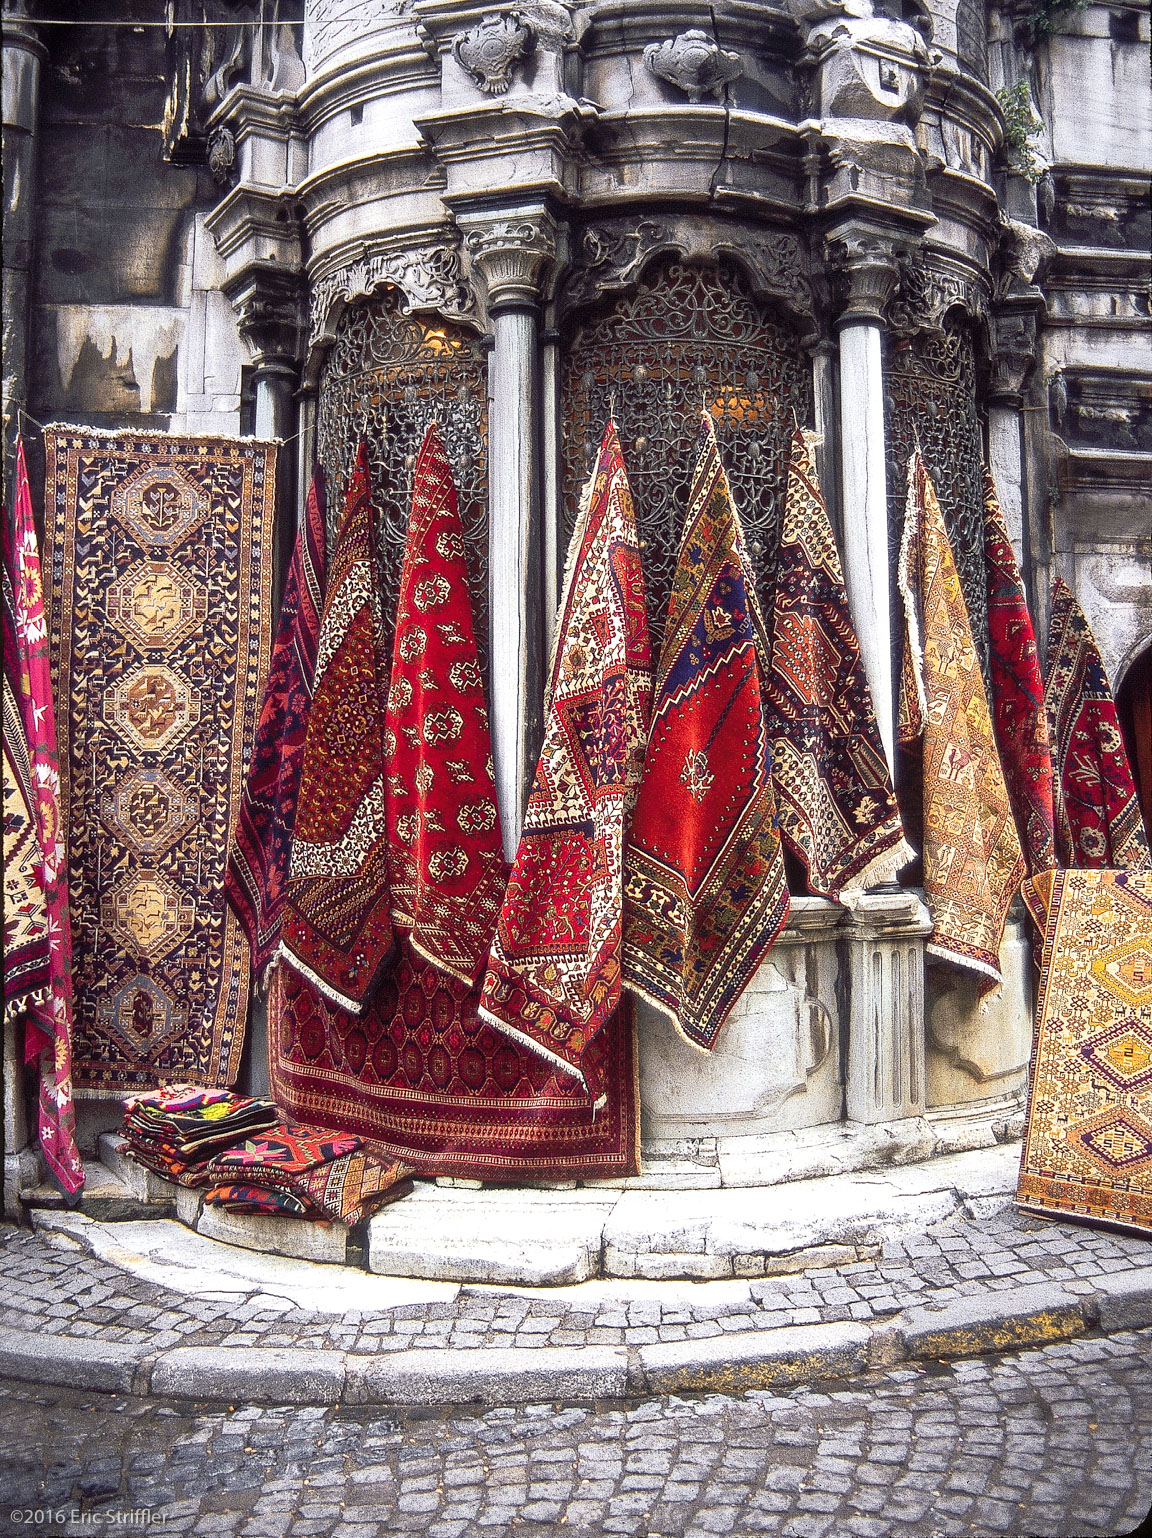 Rugs in Istanbul, Turkey